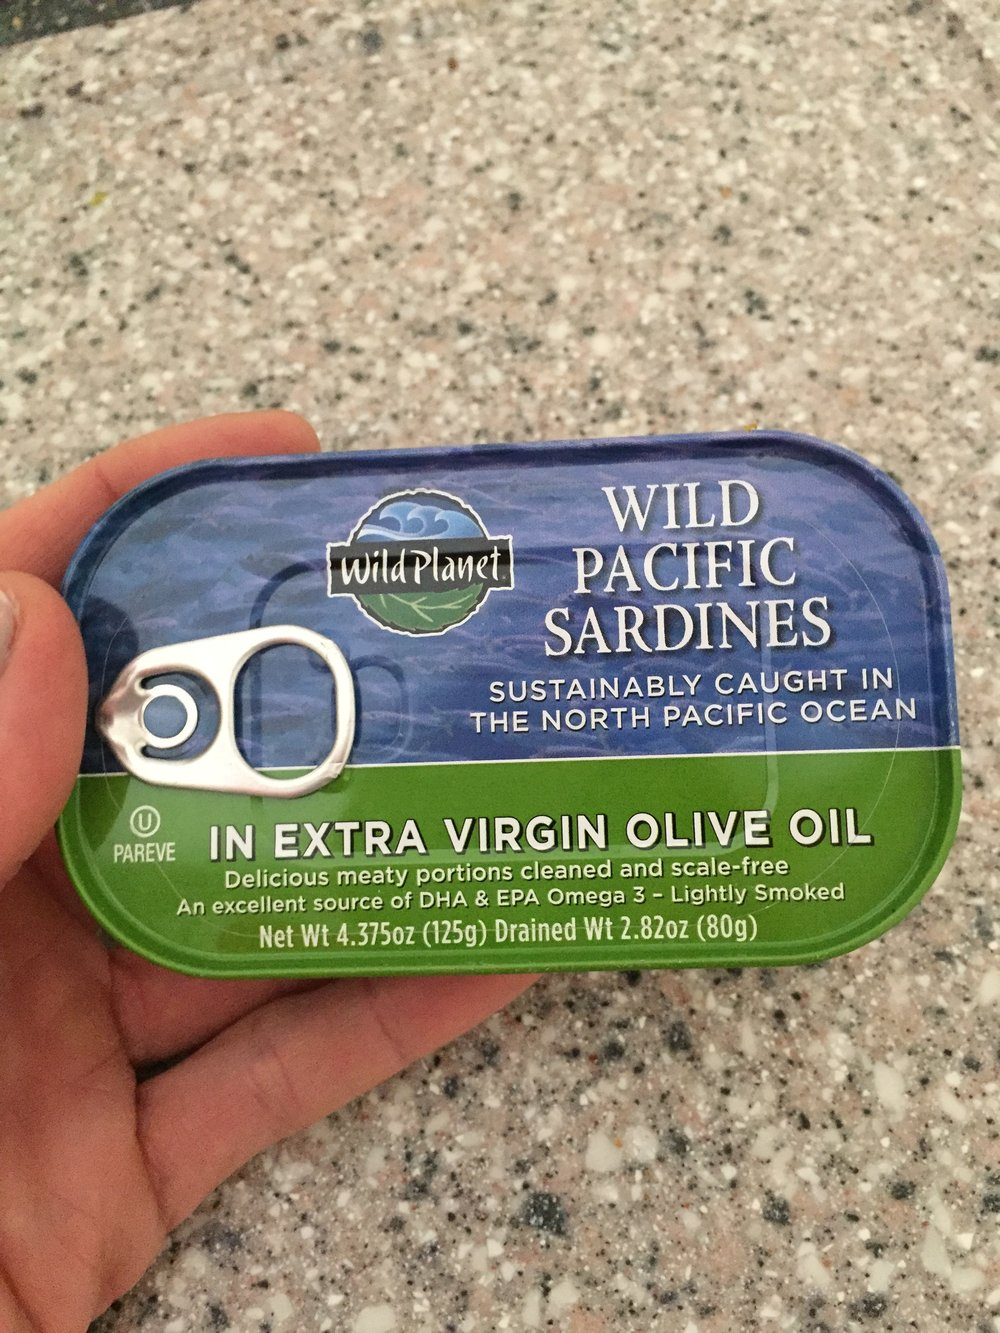 Good brand of sardines that is economical and clean.